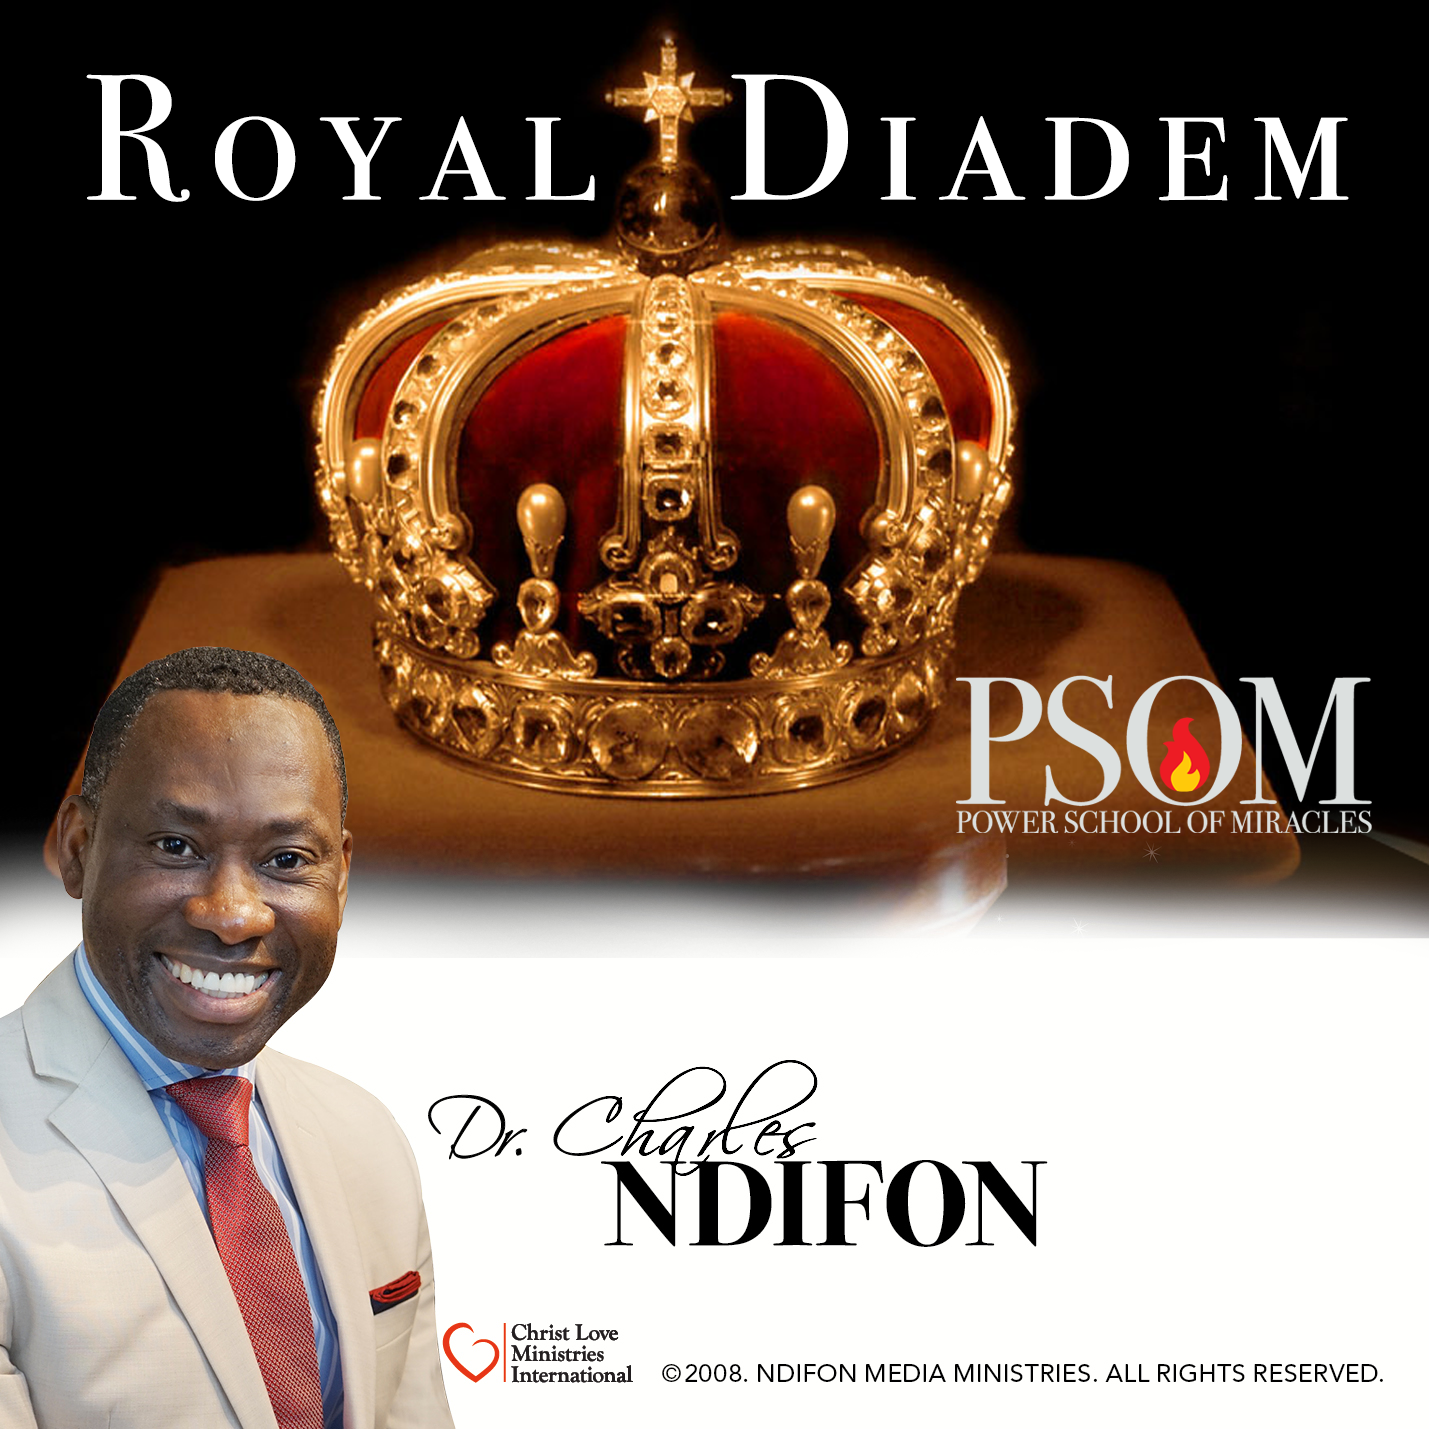 Royal Diadem - 12 Session Volume Set